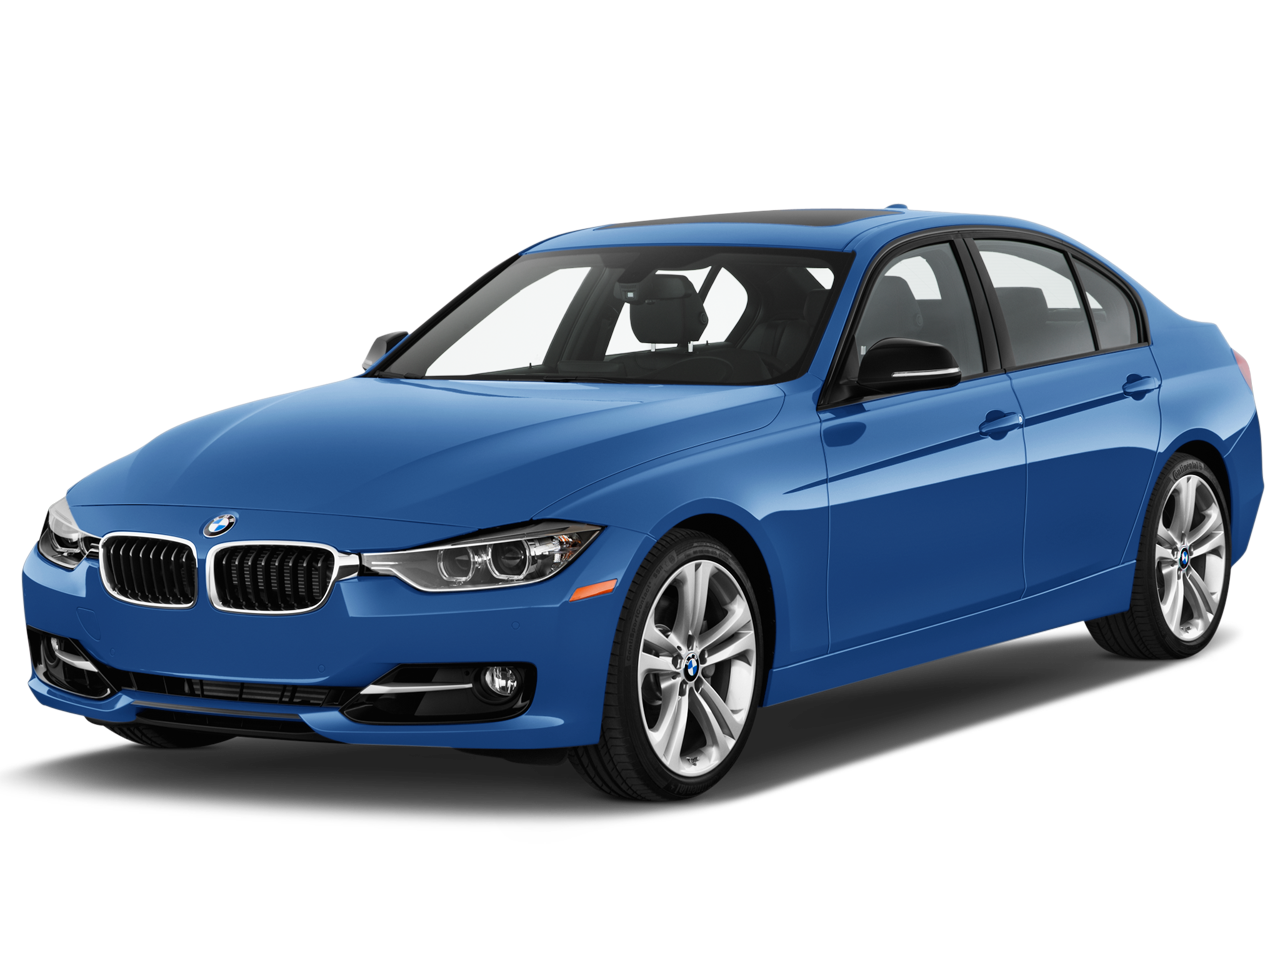 Clipart cars back. Bmw car cliparts collection